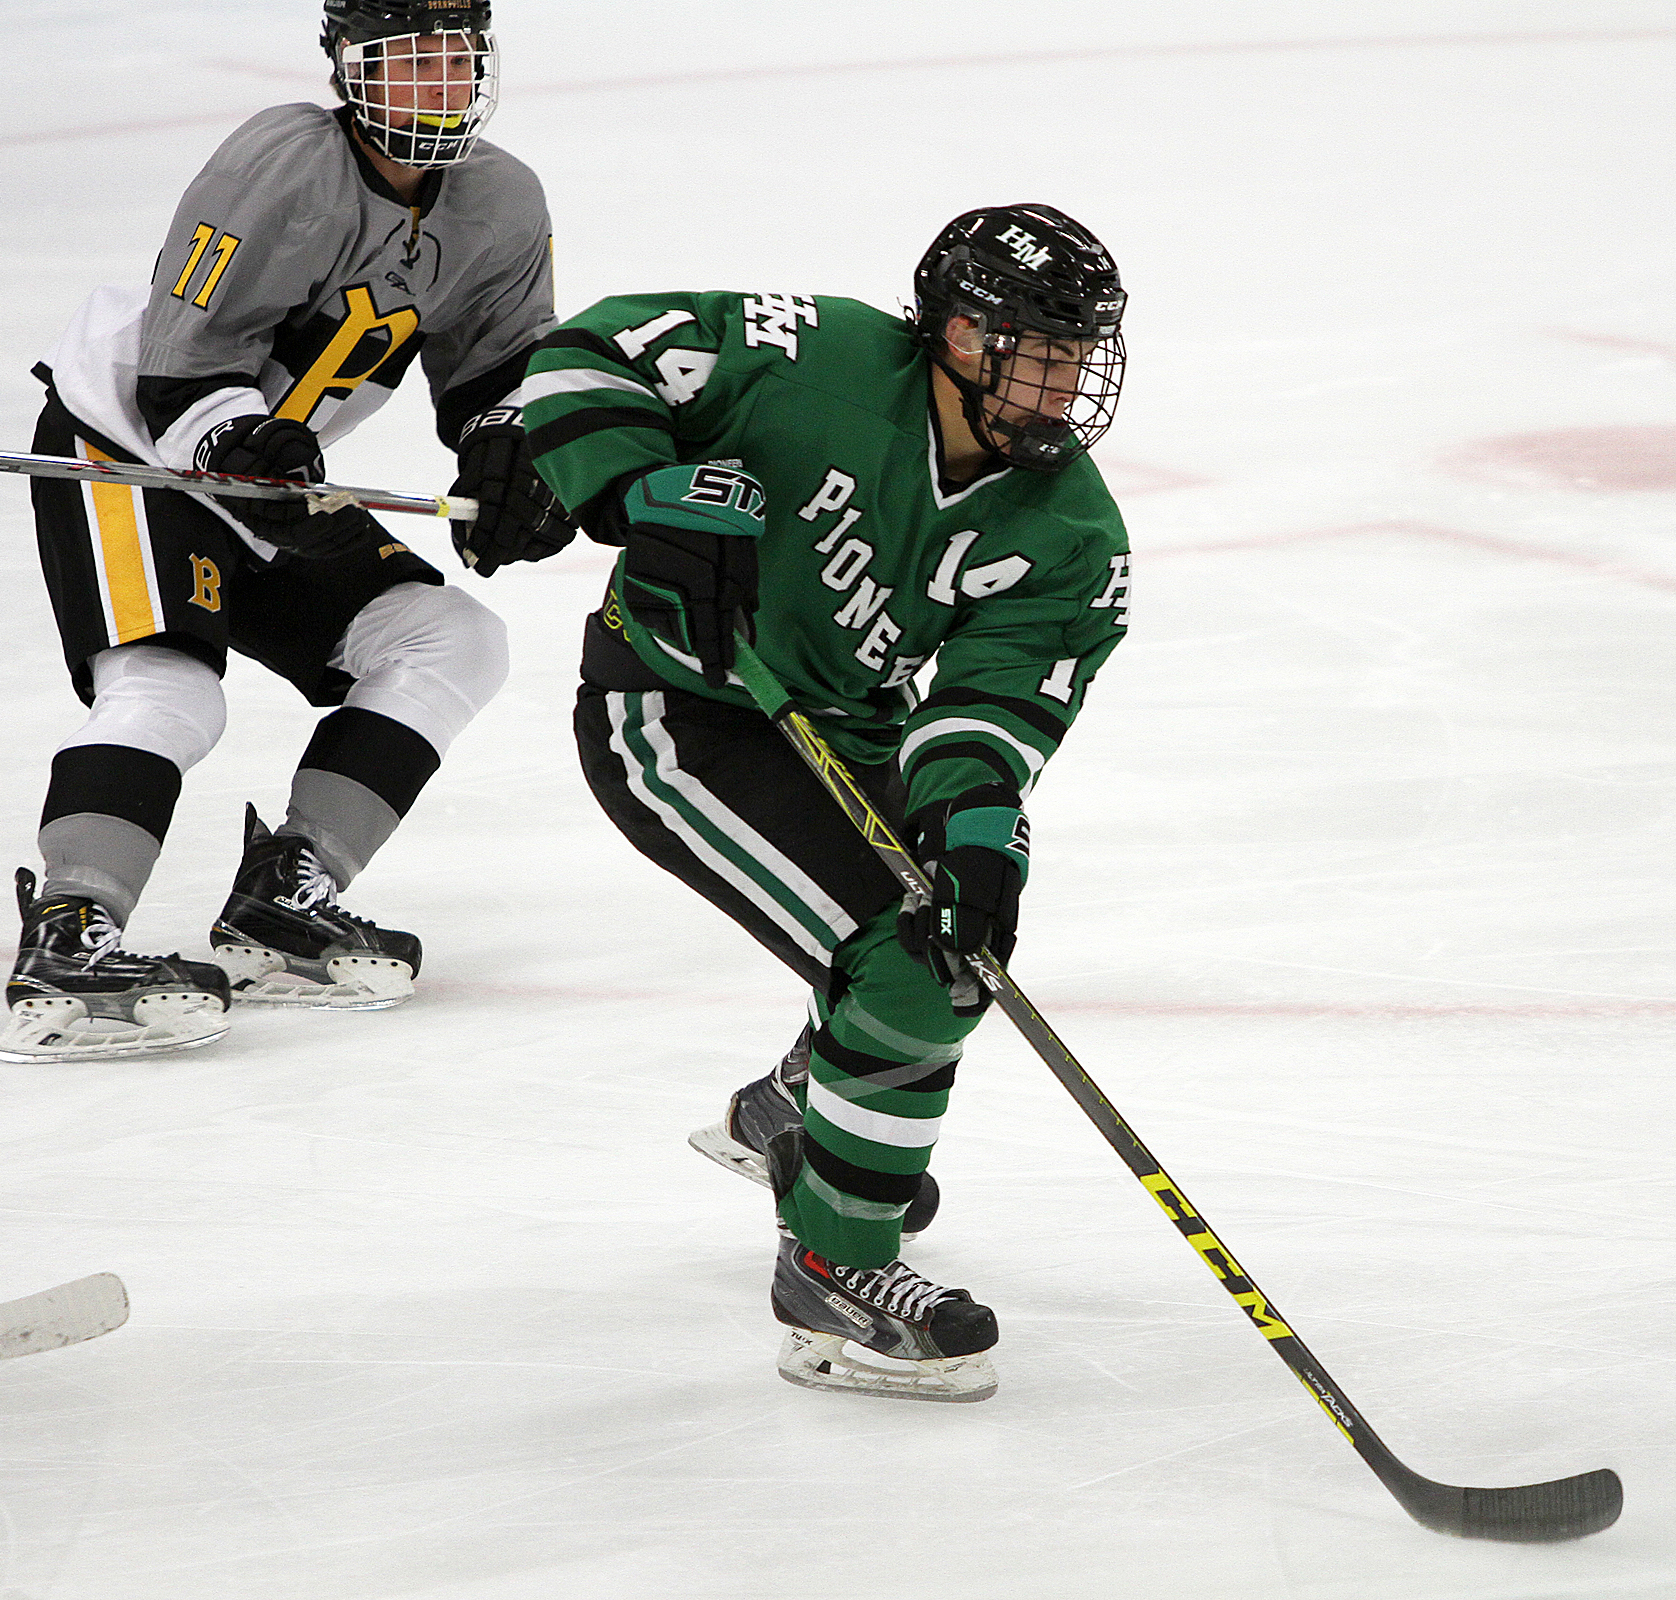 MN H.S.: UW Gets Commitment From Hill-Murray 's Ben Helgeson, Who 'fell In Love' With School